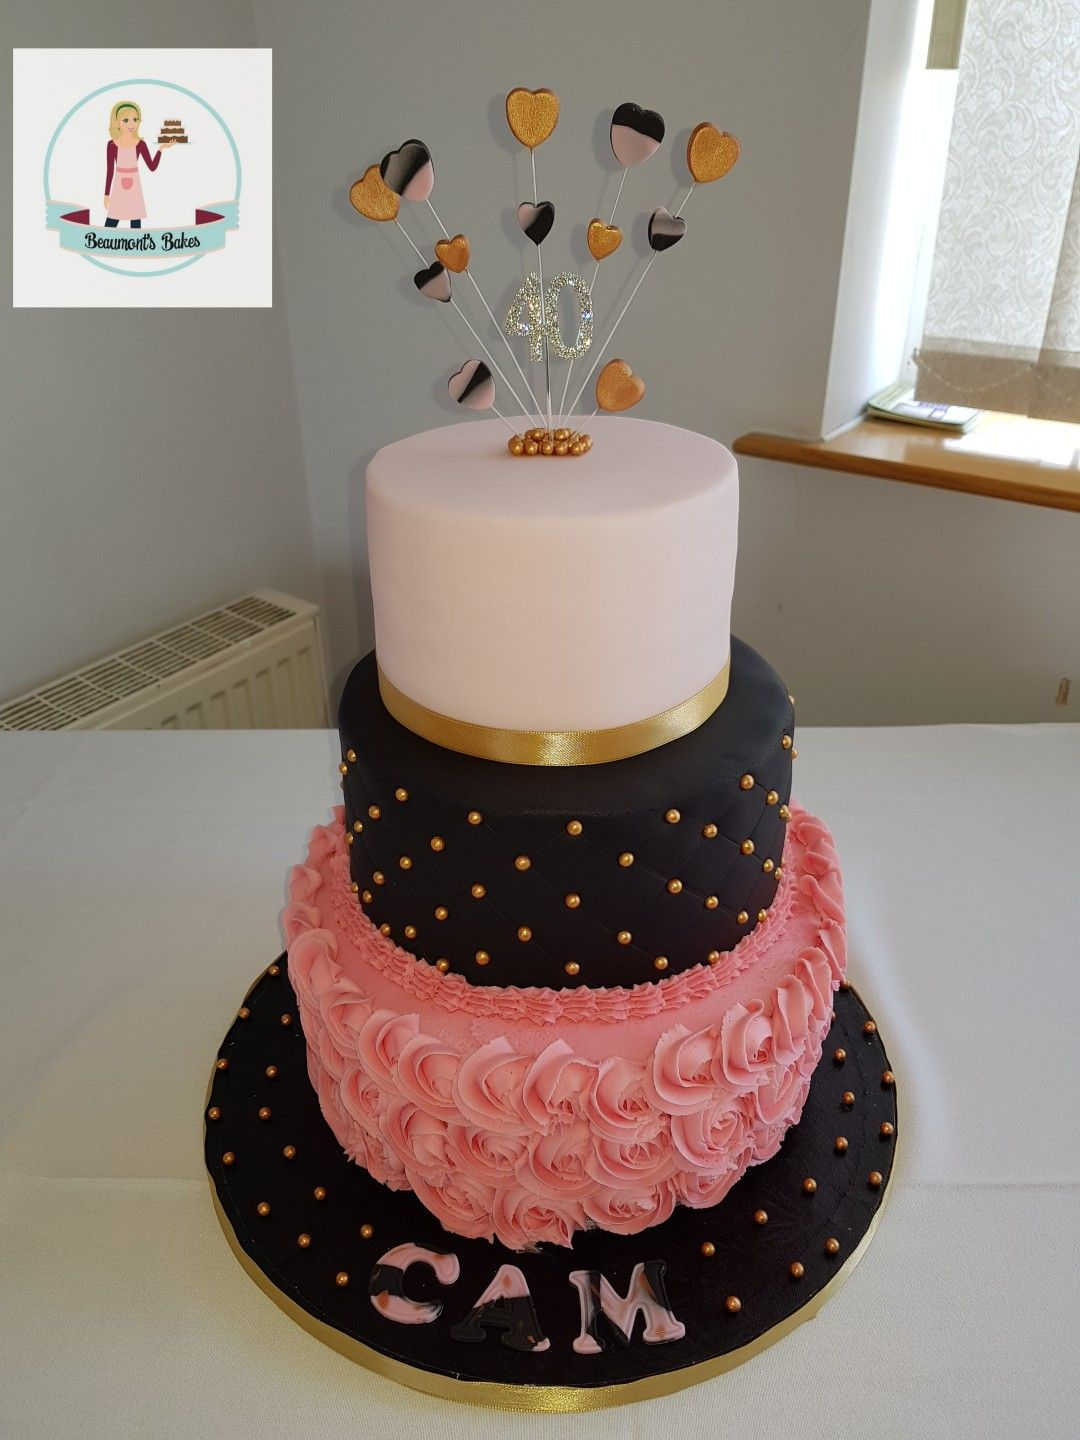 A Black Gold And Pink 40th Birthday Cake Lemon Tier Top Middle